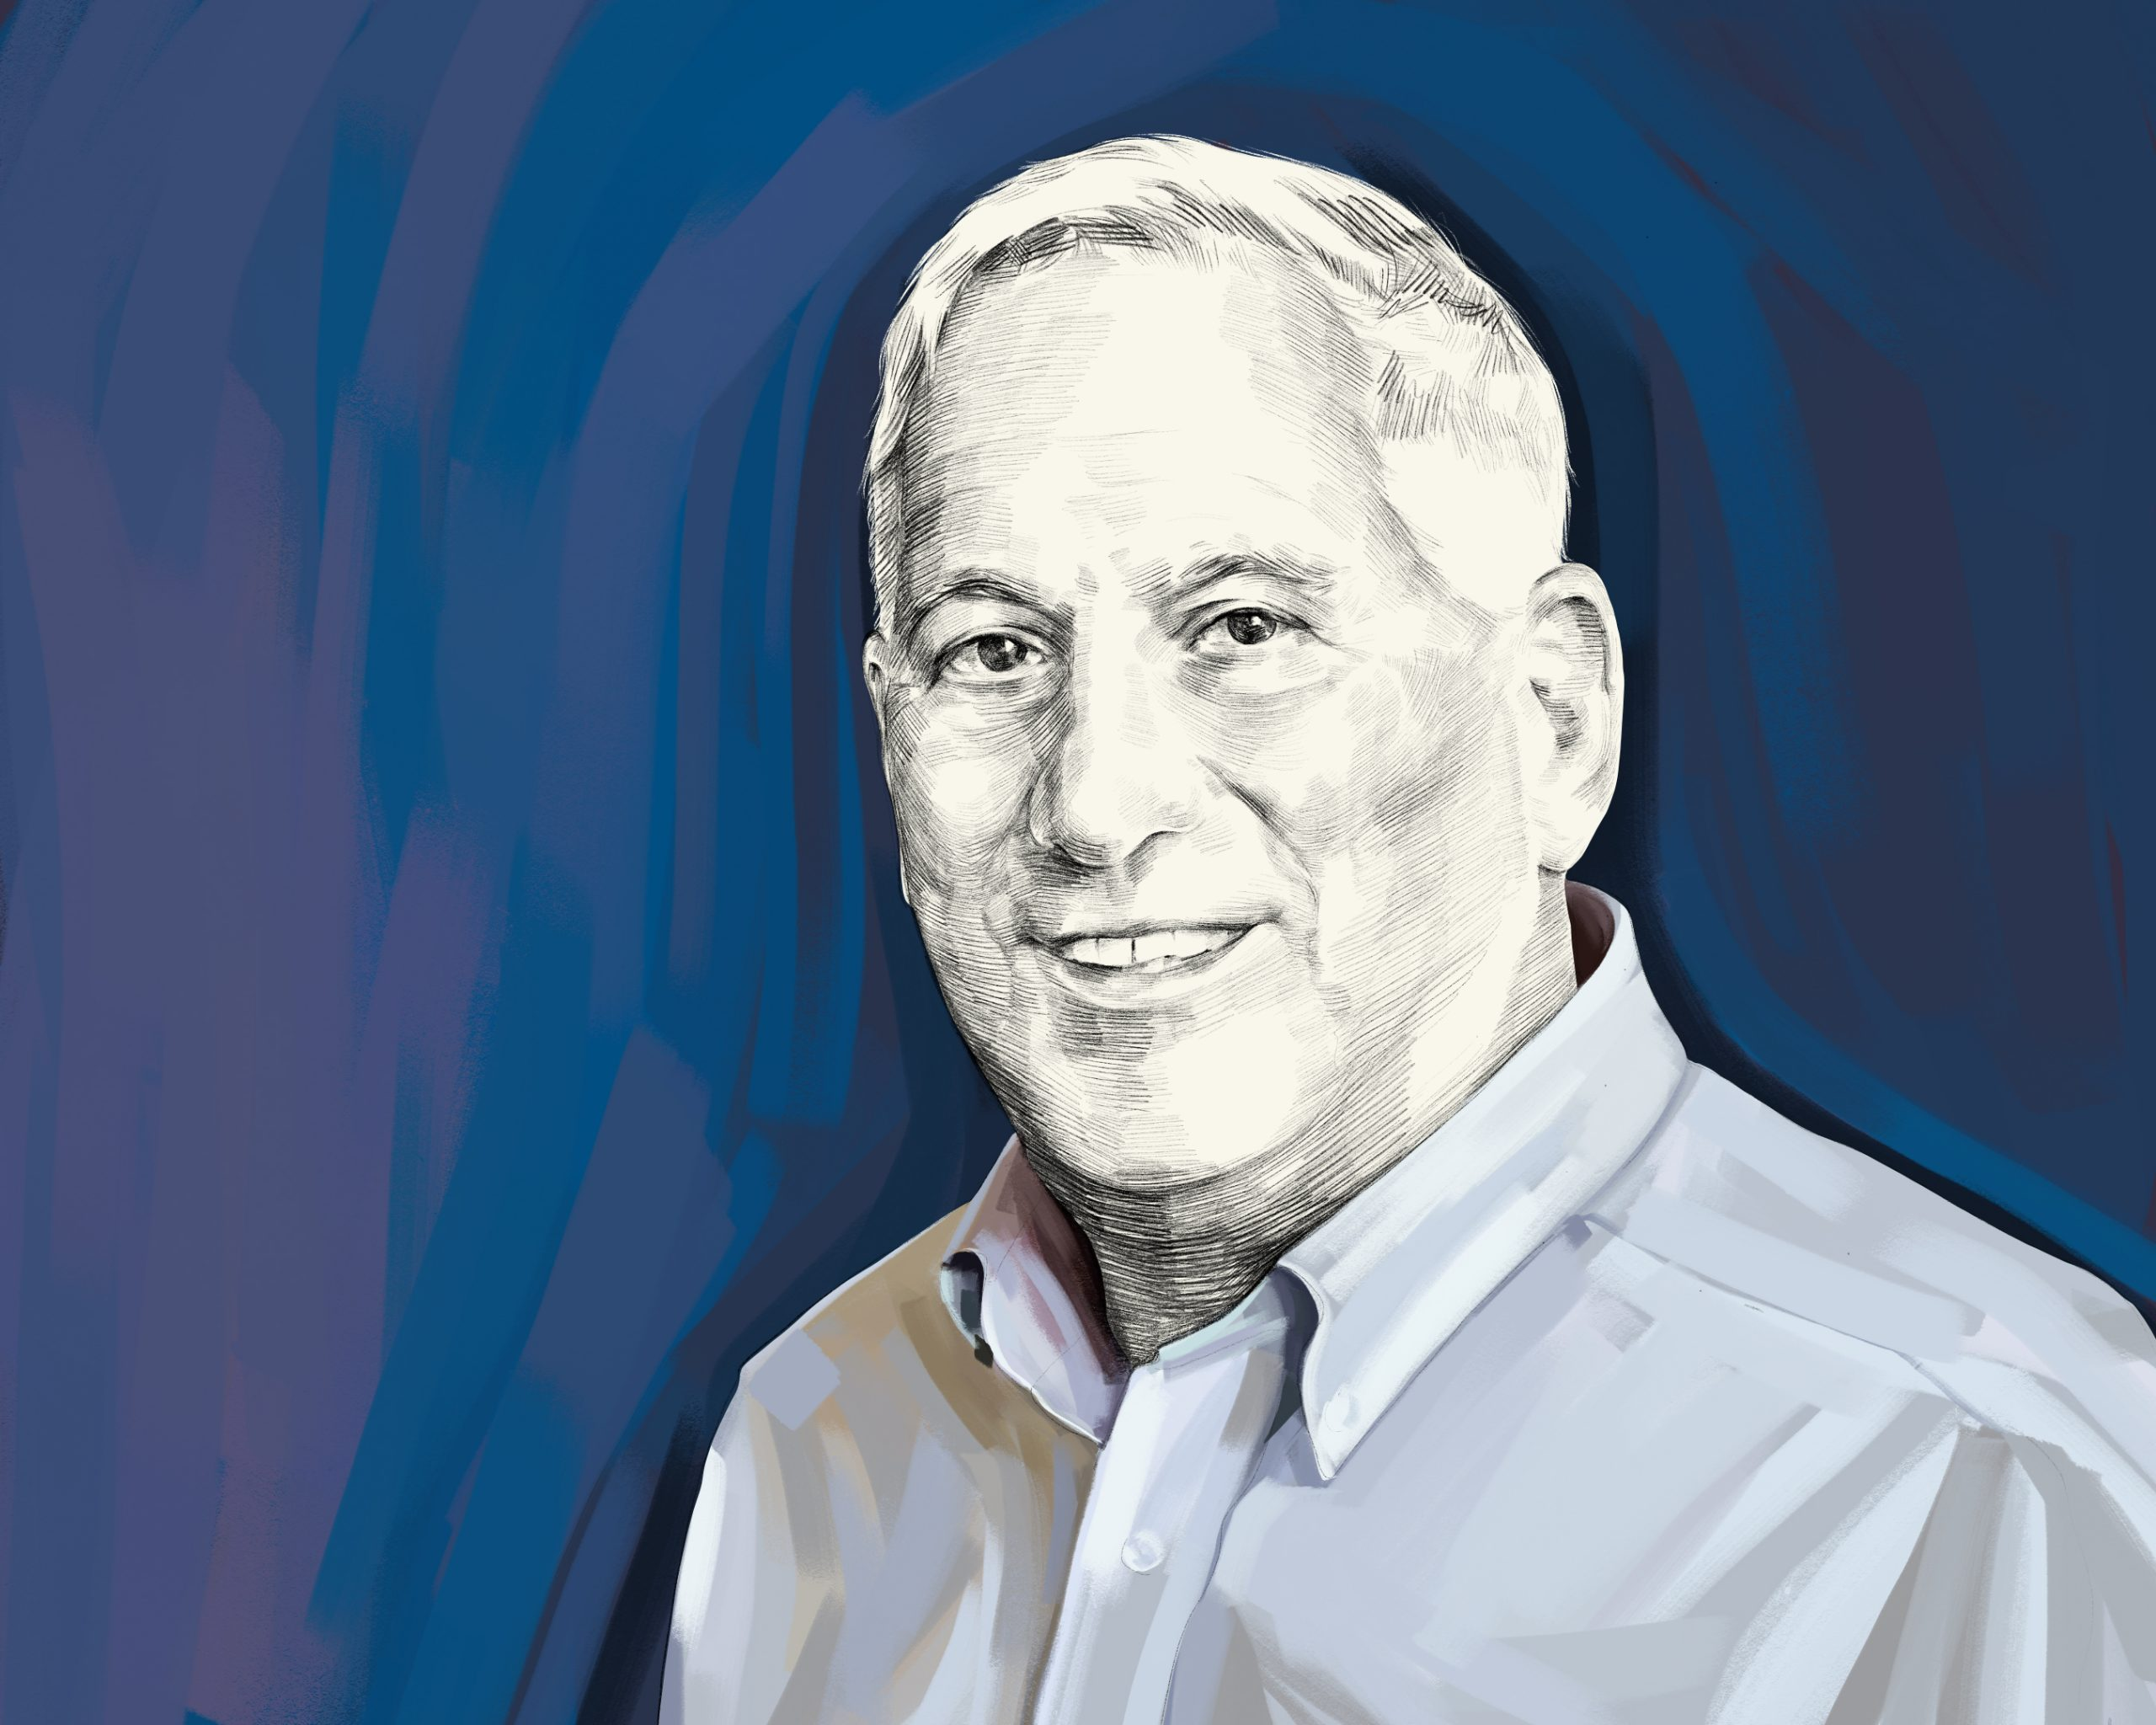 The Tim Ferriss Show Transcripts: Walter Isaacson on CRISPR, Jennifer Doudna, Gene Editing, and the Future of the Human Race (#503)